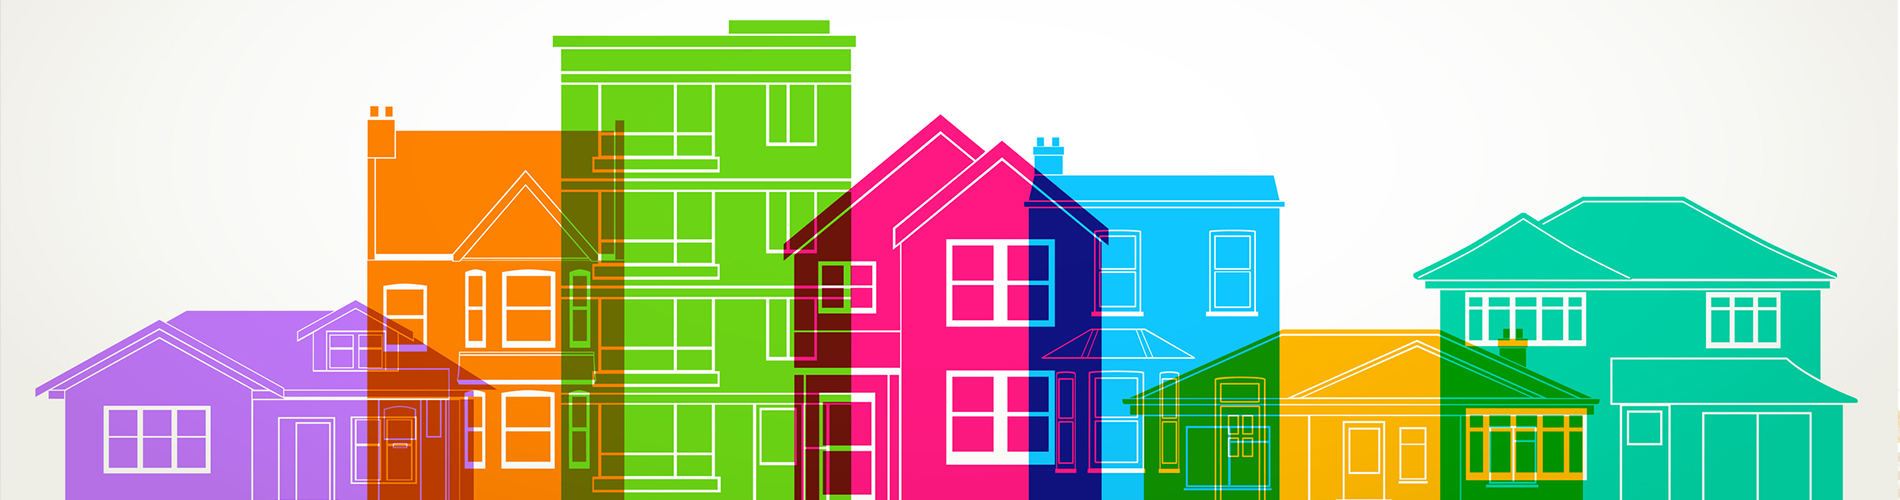 property-leasing-colour-houses-banner1900-x-500